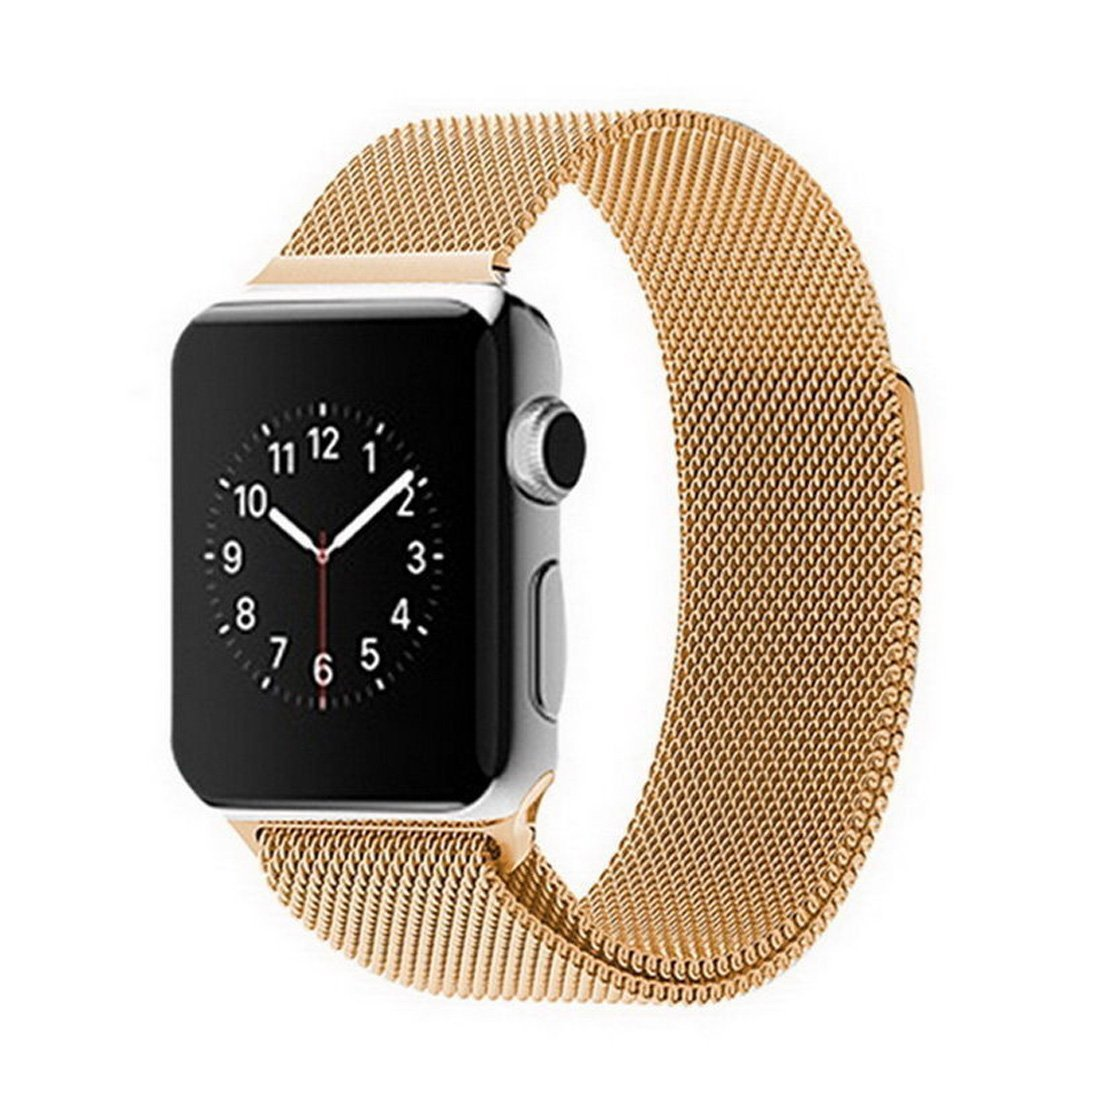 Apple Watch Band, iWatch Band, AsiaFly® Apple Watch Band, Milanese Loop Stainless Steel Bracelet Strap Magnetic Closure for Apple Watch iWatch Sport Edition Gold 38mm